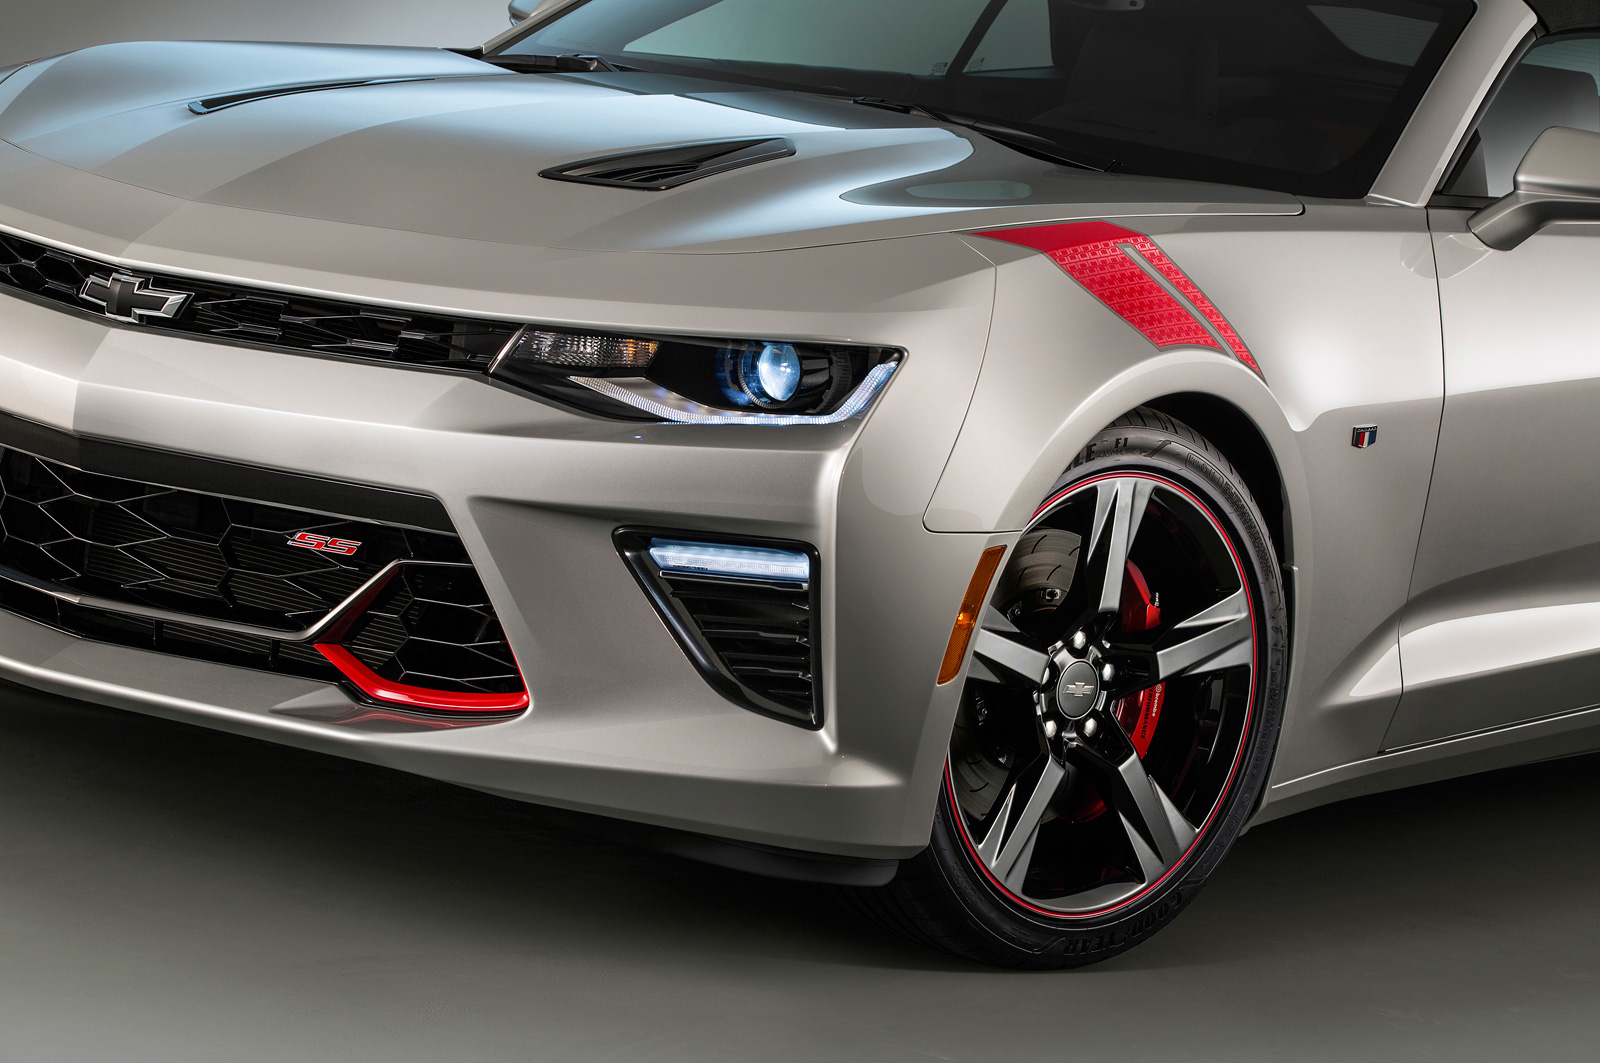 Camaro black and red chevy camaro : 2016 Chevrolet Camaro SS Gets Black, Red Accent Packages